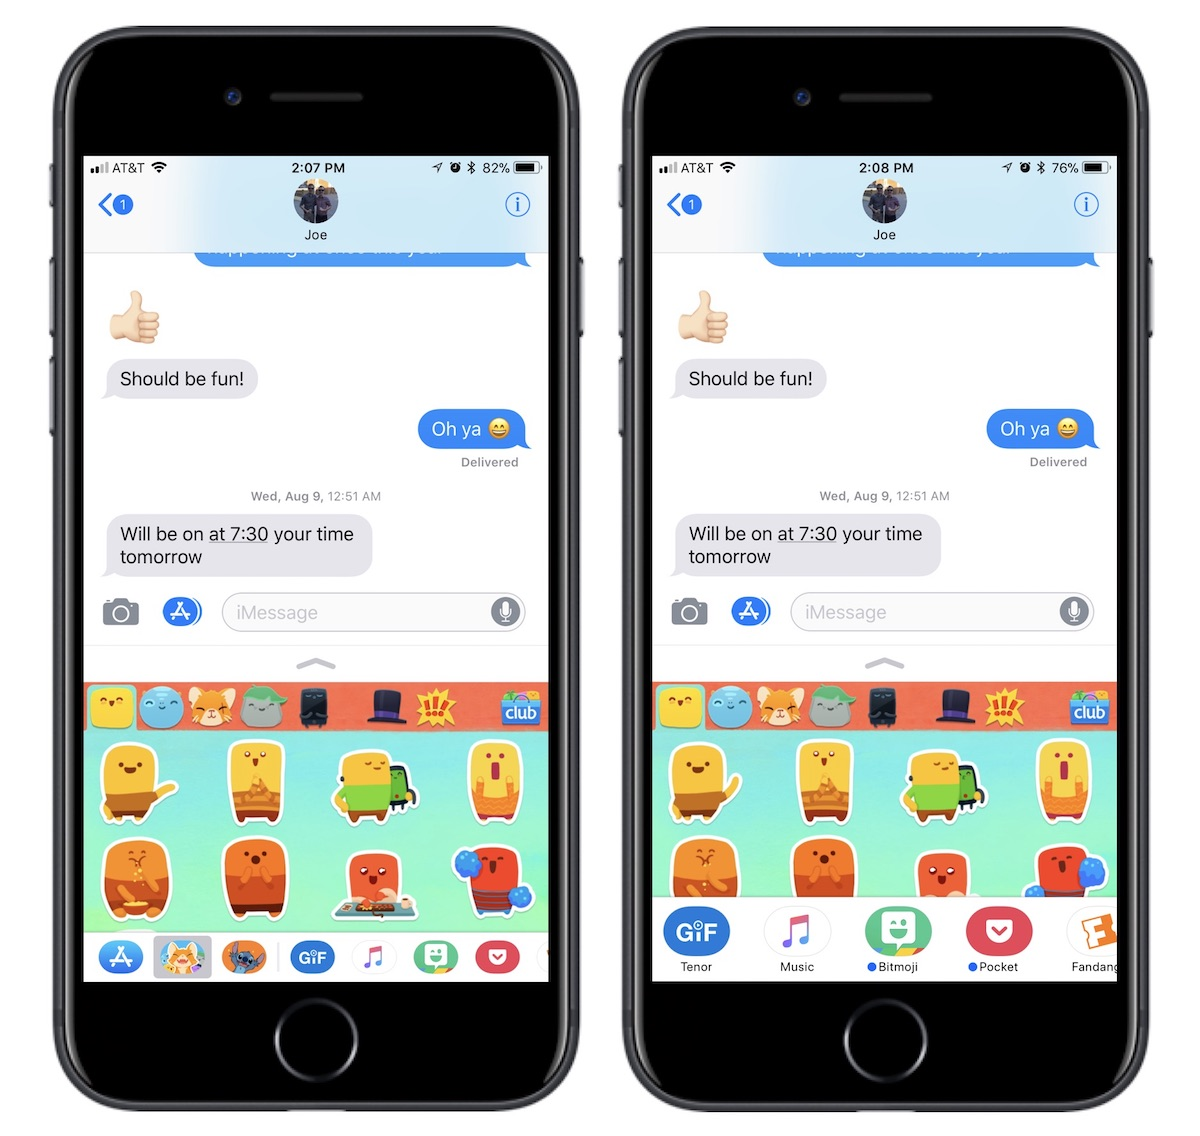 How To Use The Redesigned Messages App Drawer In Ios 11 Mac Rumors